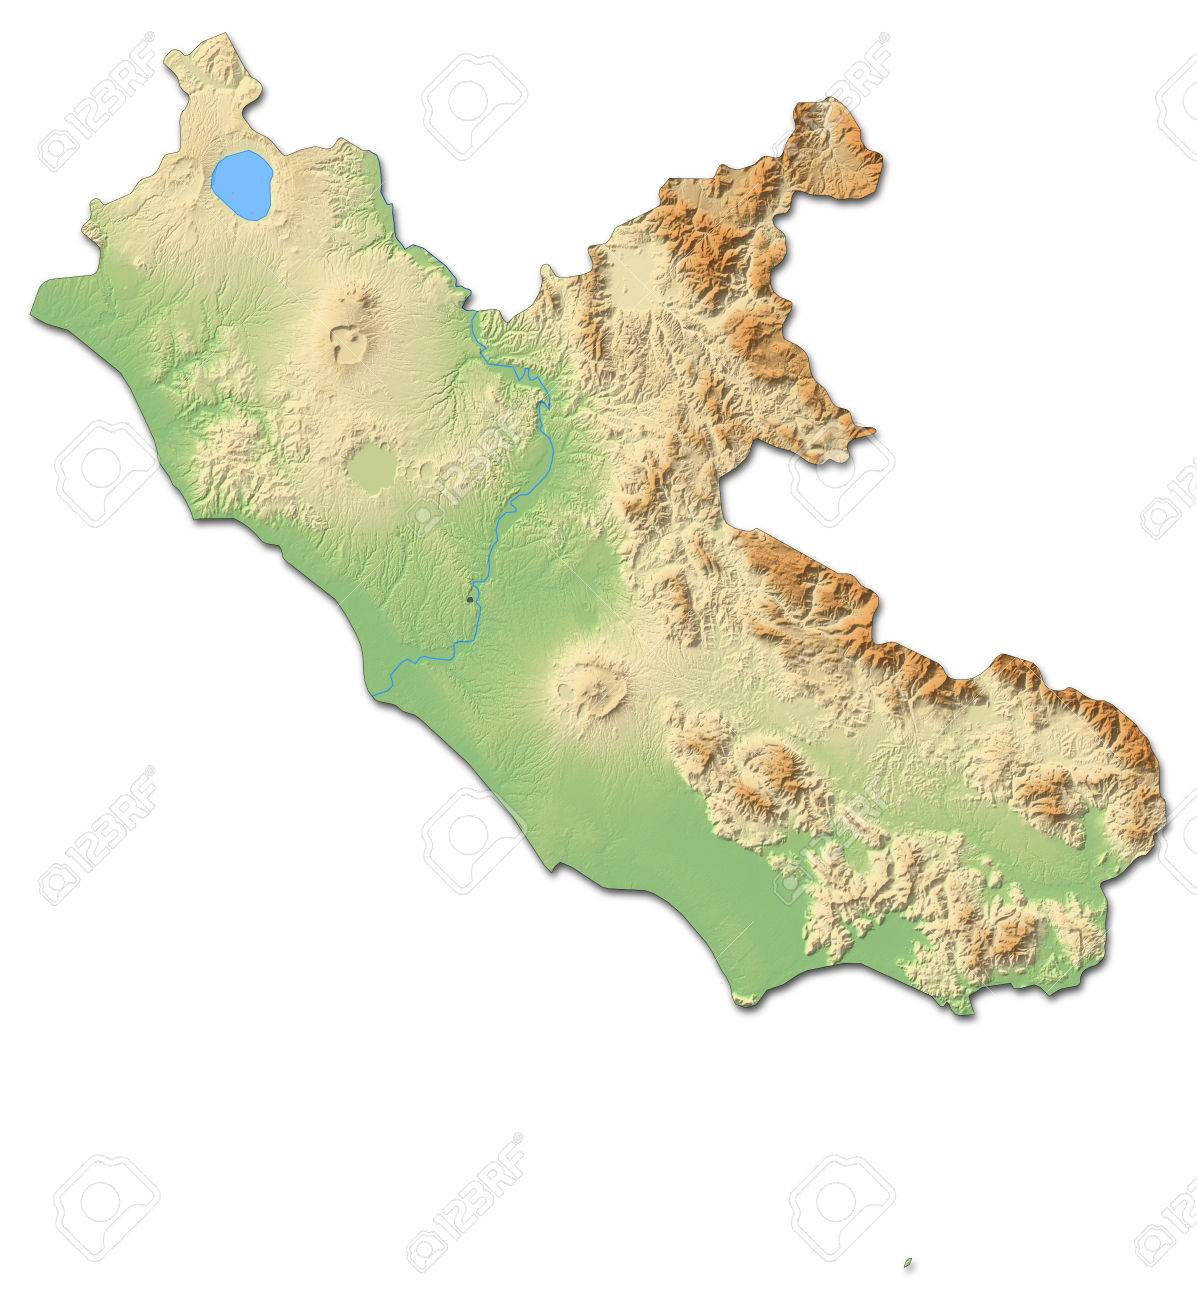 Relief Map Of Lazio A Province Of Italy With Shaded Relief Stock